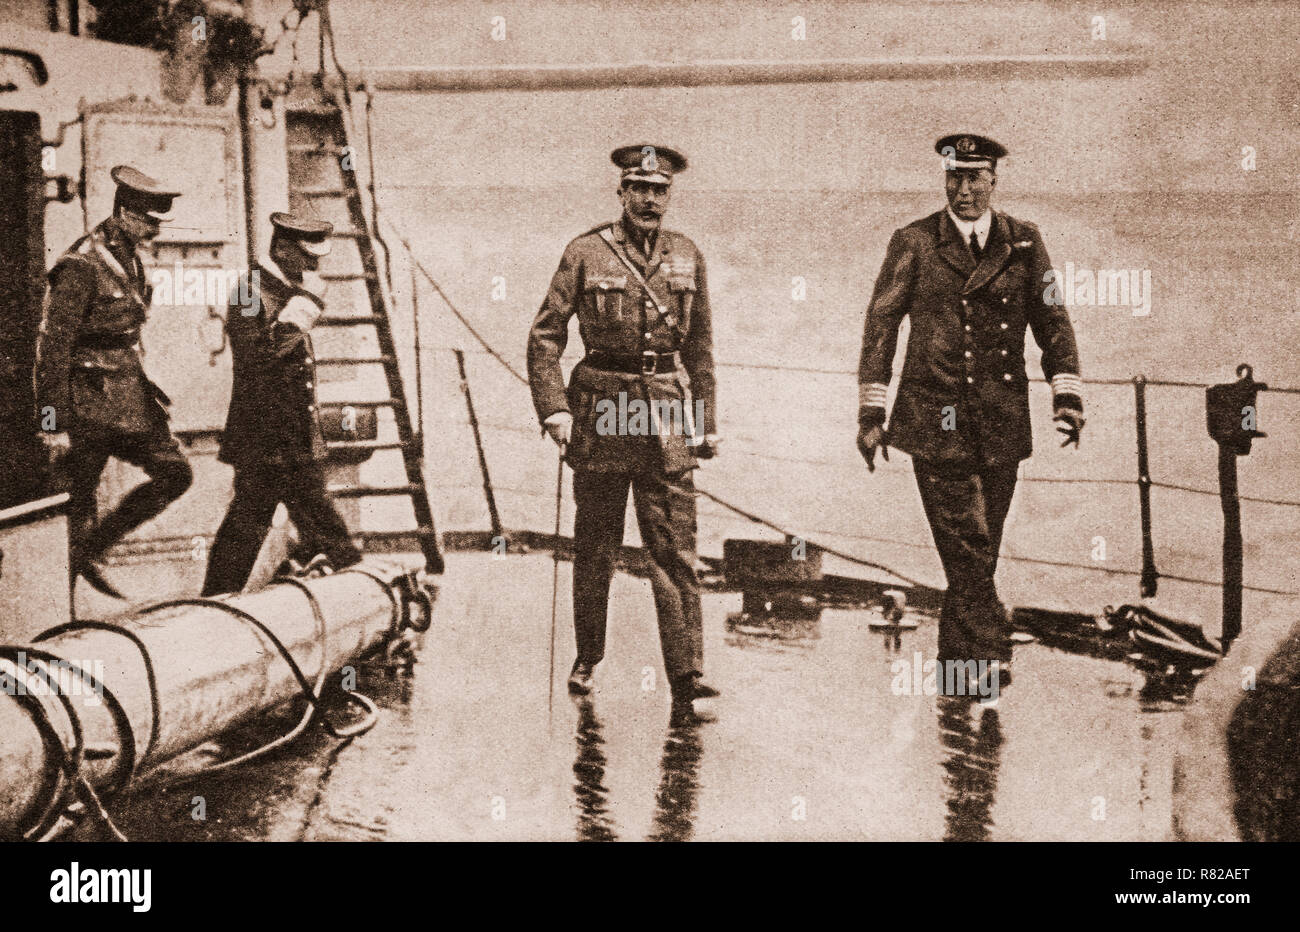 Lord Kitchener on HMS Iron Duke before leaving for a mission to Russia. Eventually the ship was torpdoed or mined, to sink with all hands on June 5th, 1916. - Stock Image